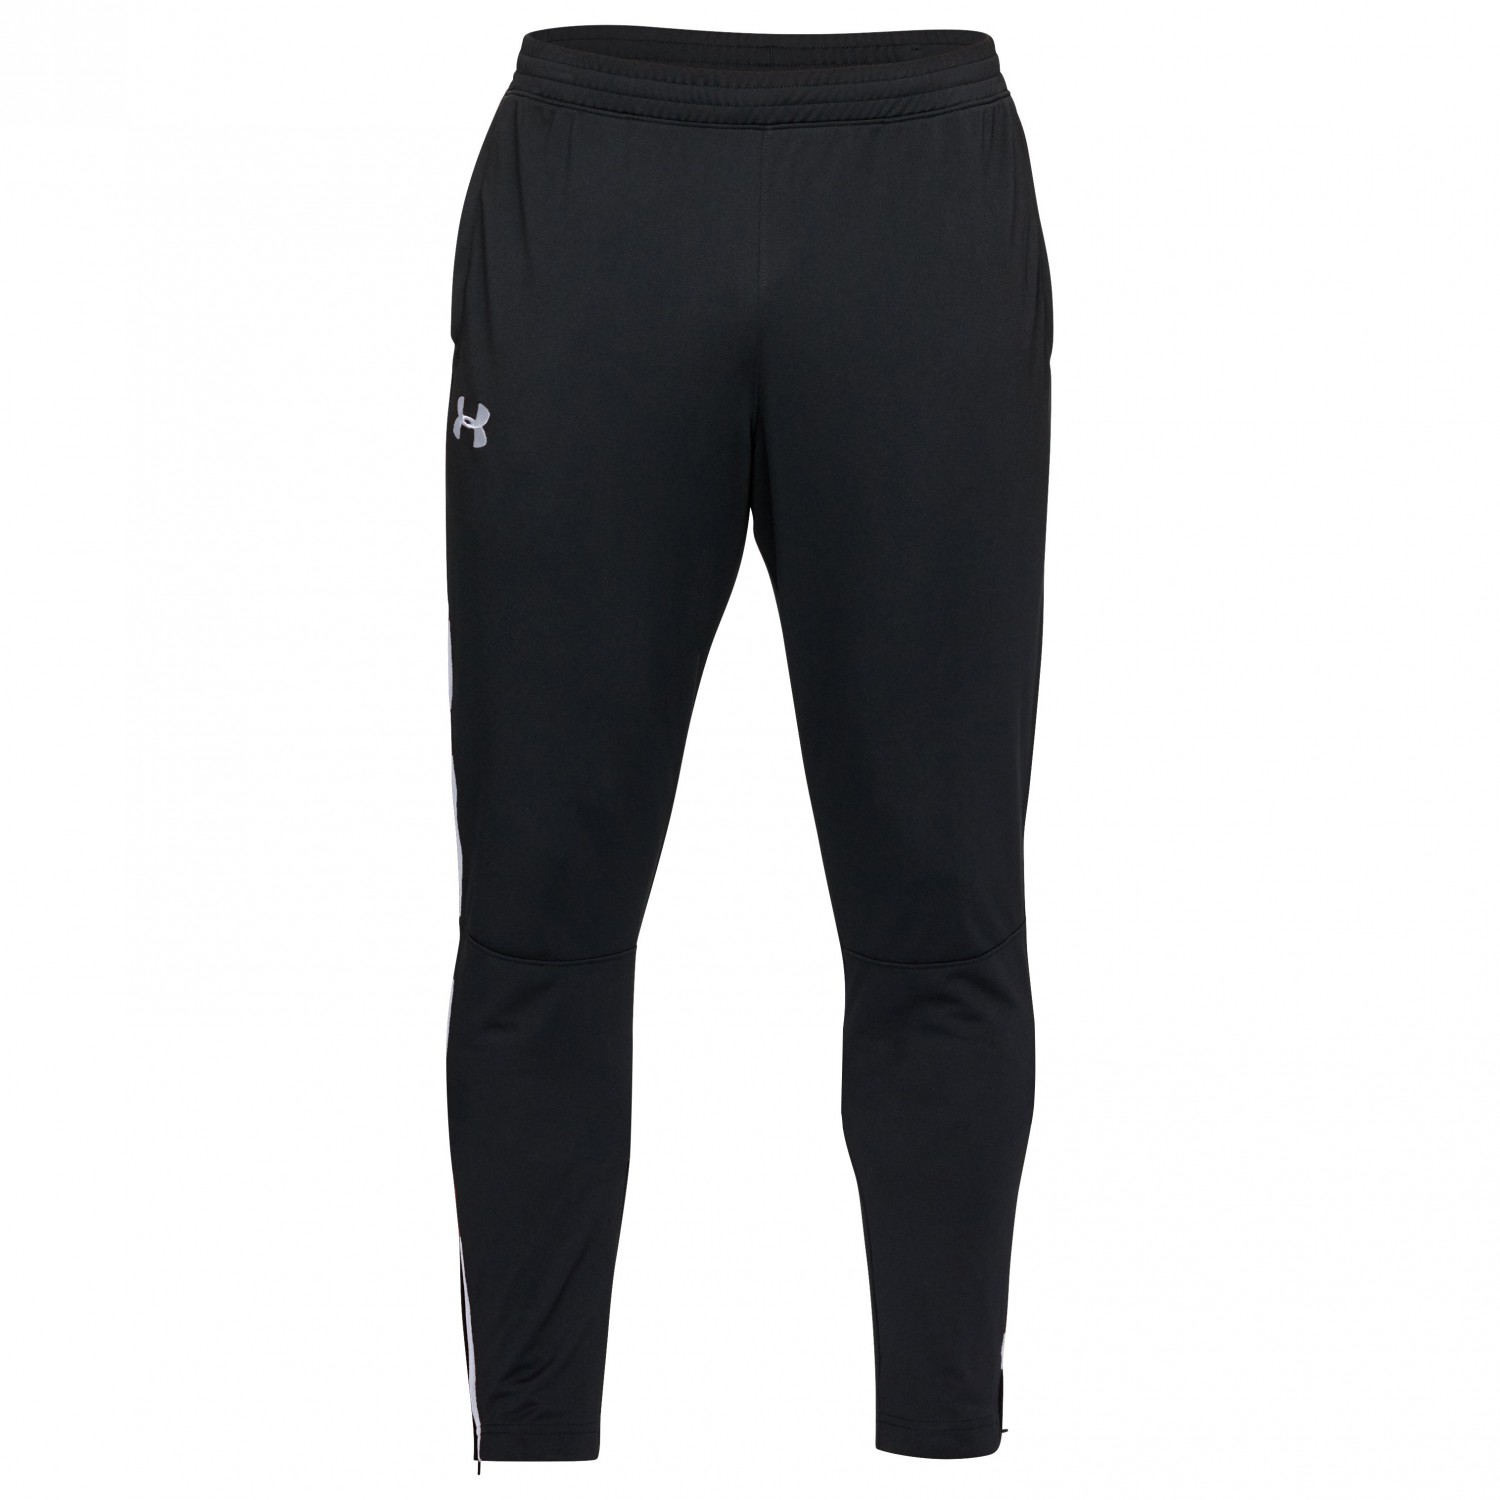 Under Armour Sportstyle Pique Track Pant Pantalón de